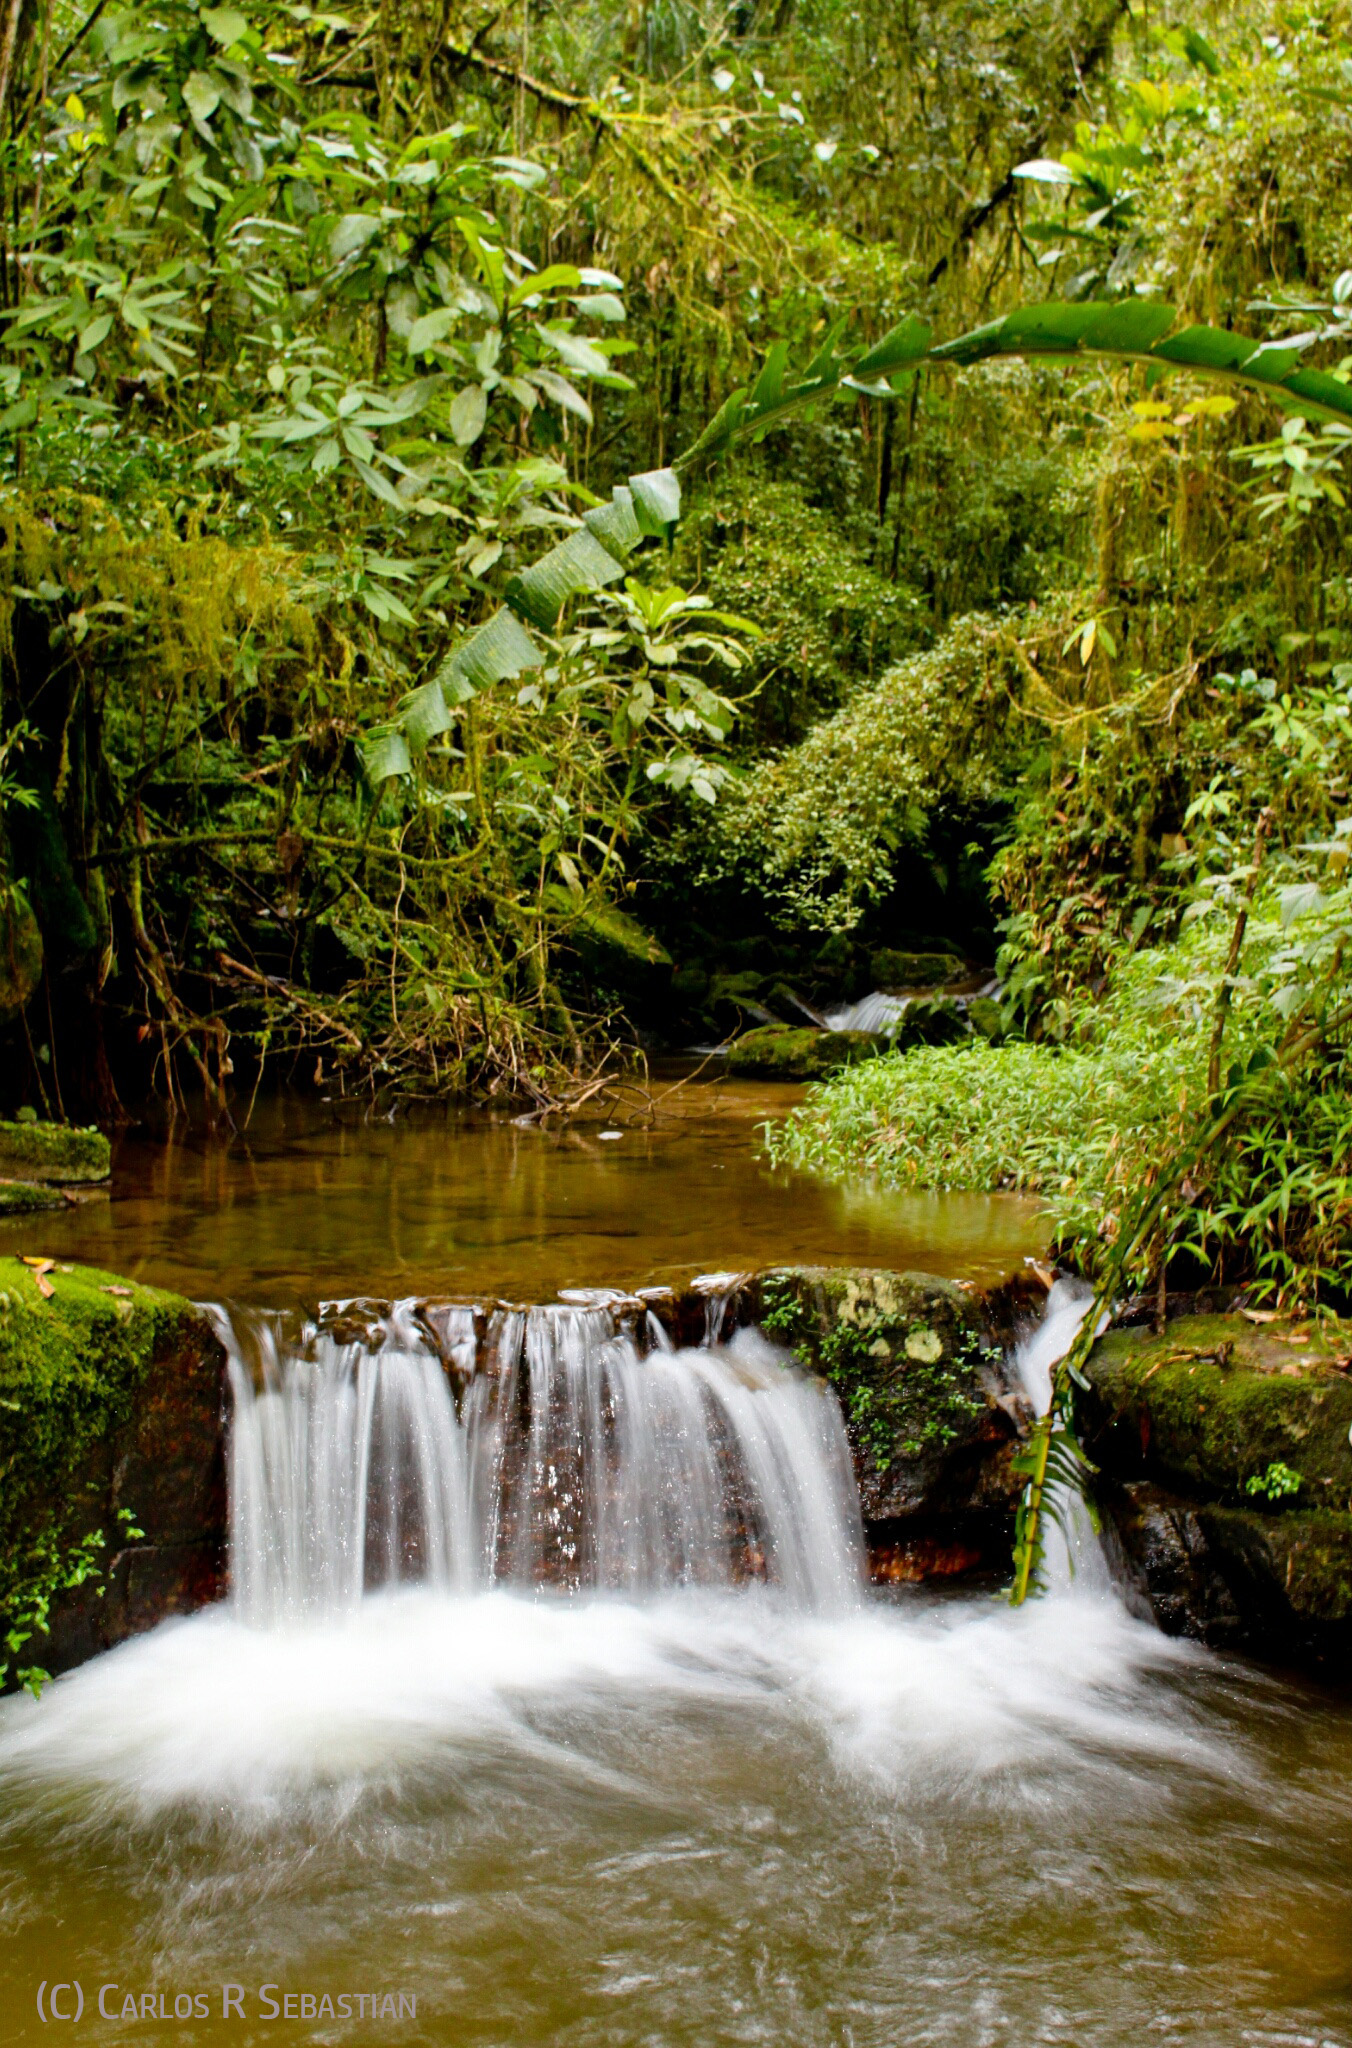 Nature can teach us the important lessons of wholeness and interconnectedness - Image: A forest stream cascades over rocks (copyrighted)